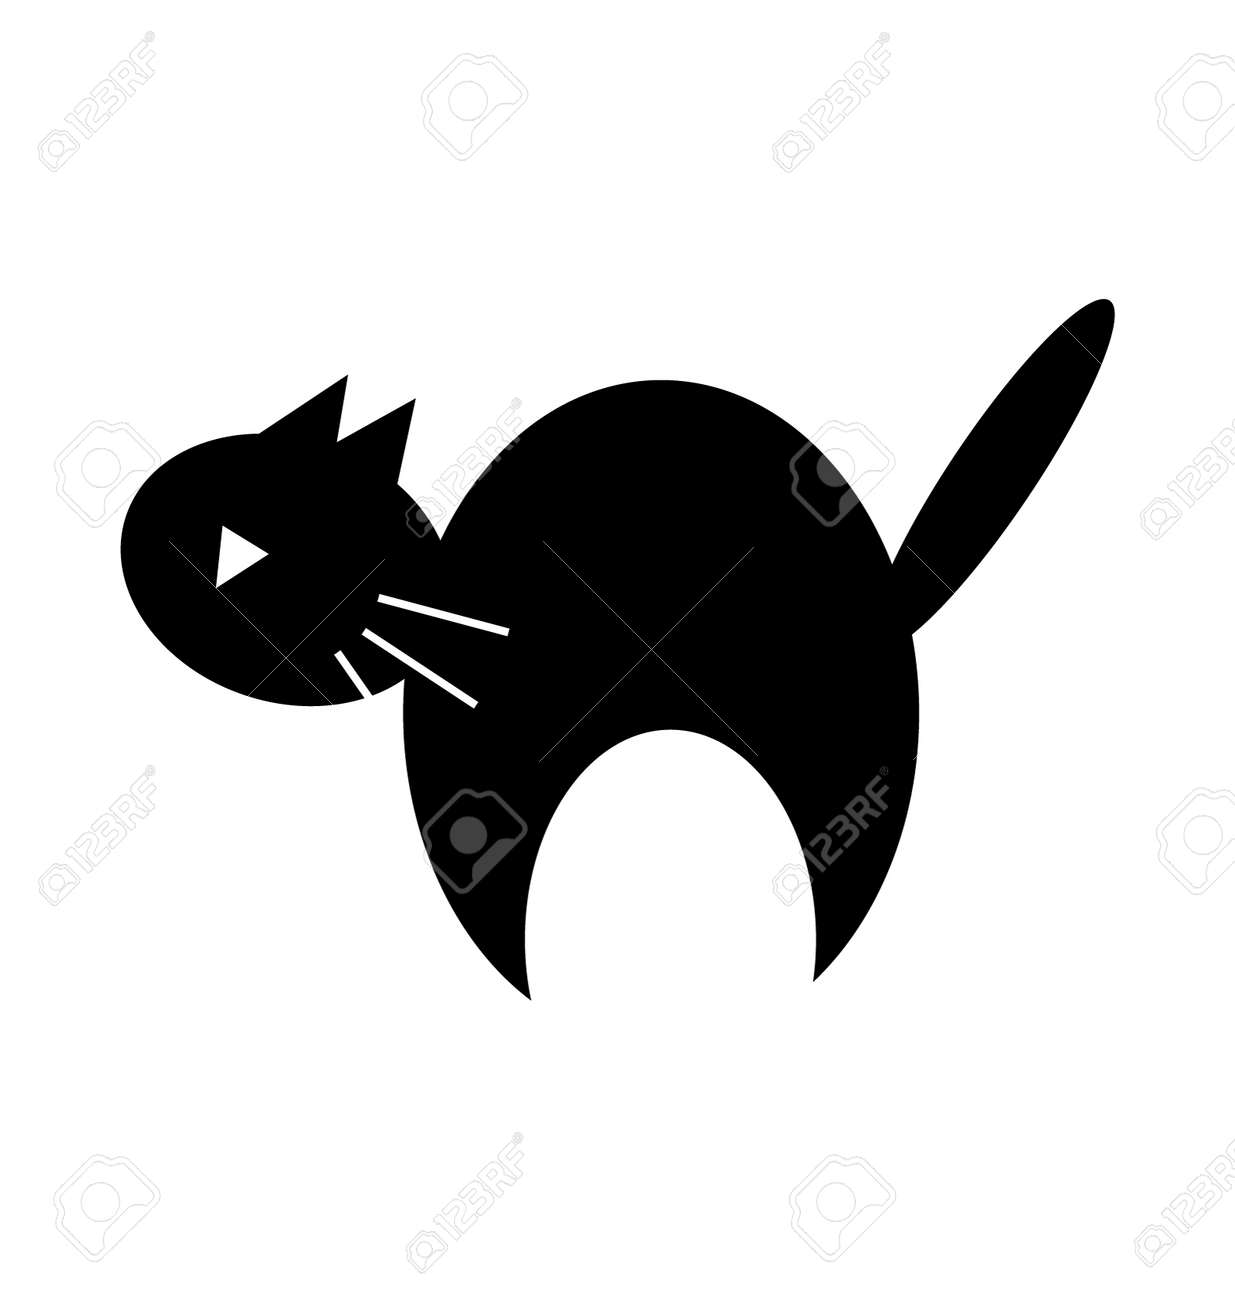 Cute Halloween Black Cat Silhouette Clipart Royalty Free Cliparts ...